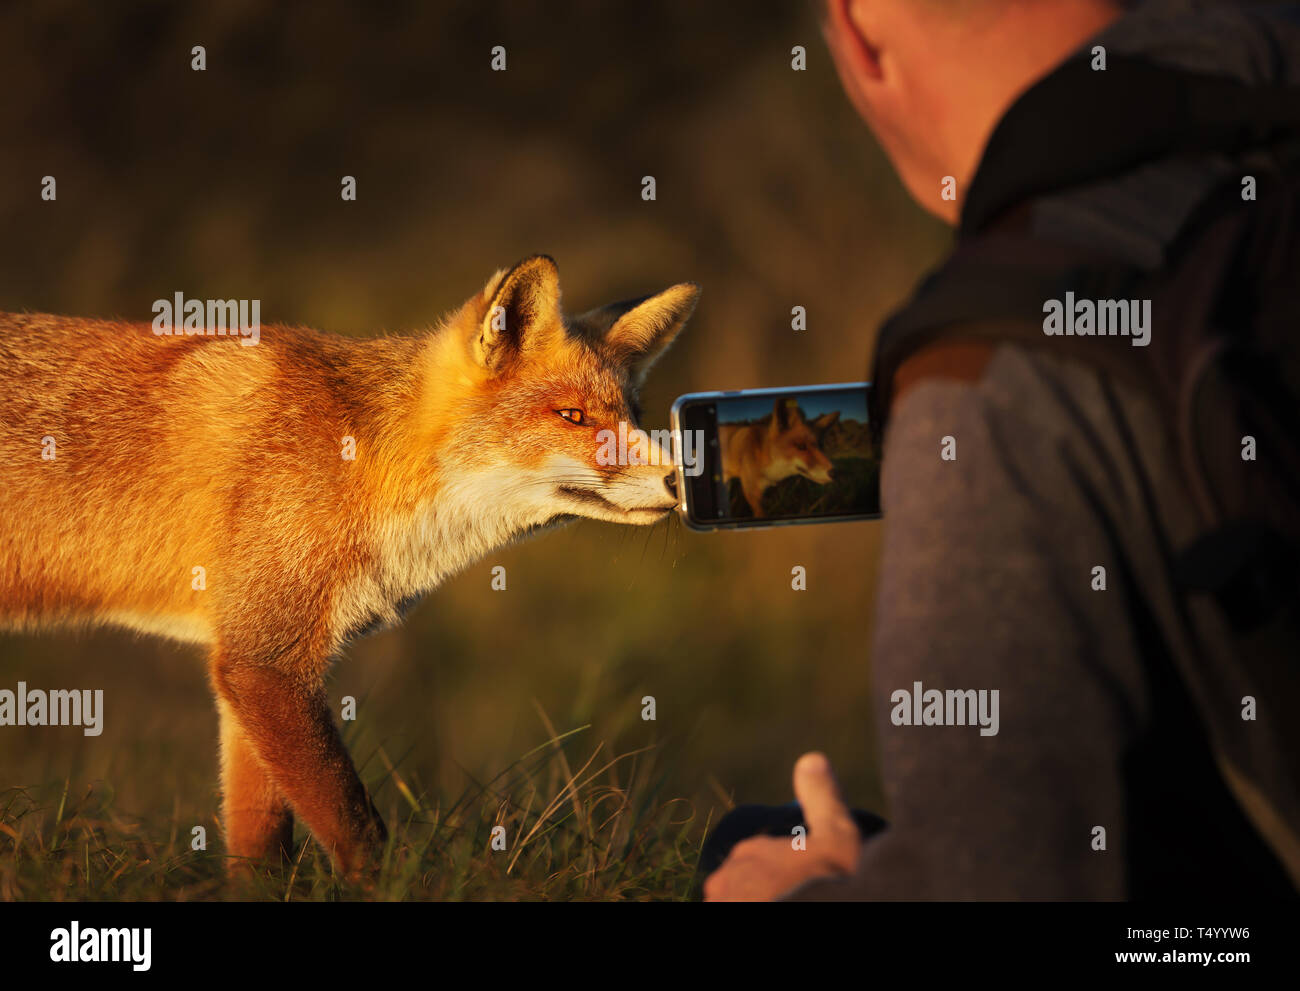 Photographer taking picture of a red fox with a smart phone. - Stock Image